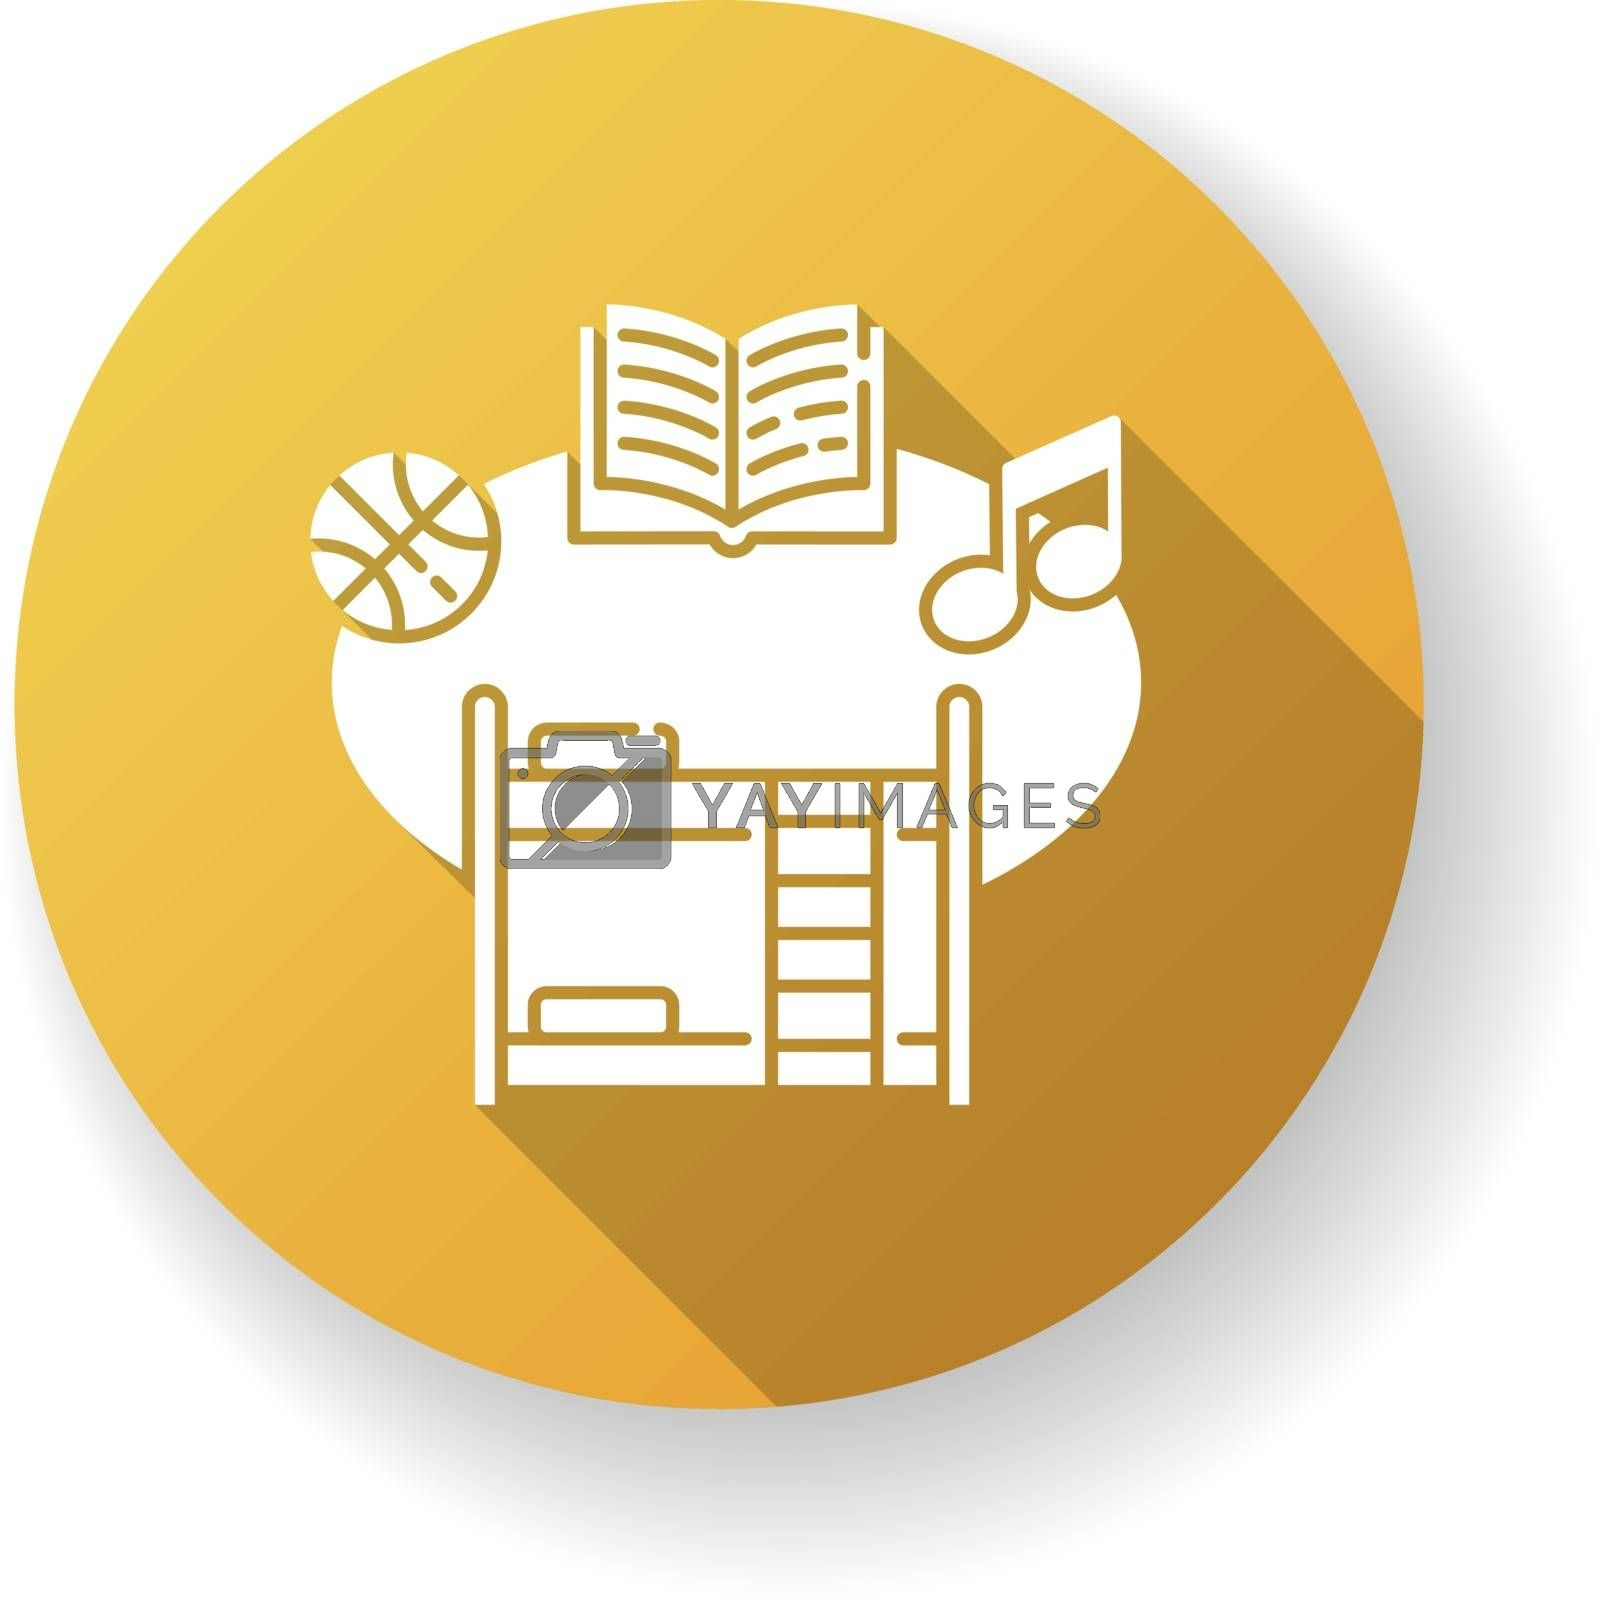 Boarding school yellow flat design long shadow glyph icon. Educational institution with extracurricular activities and accommodation for students. College dorm. Silhouette RGB color illustration